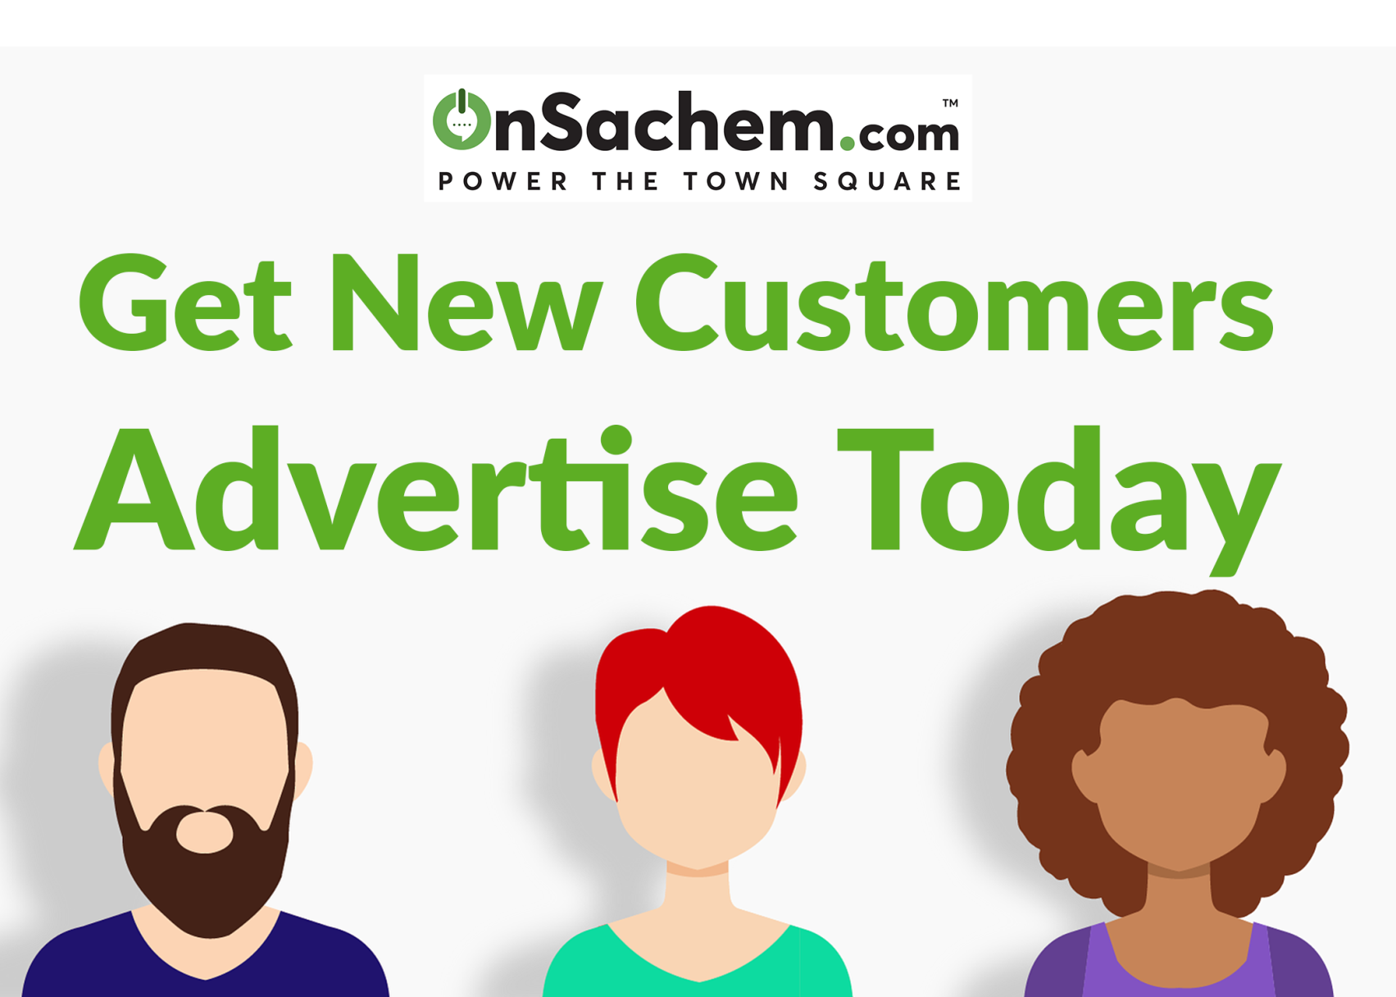 Get New Customers. Advertise Today.